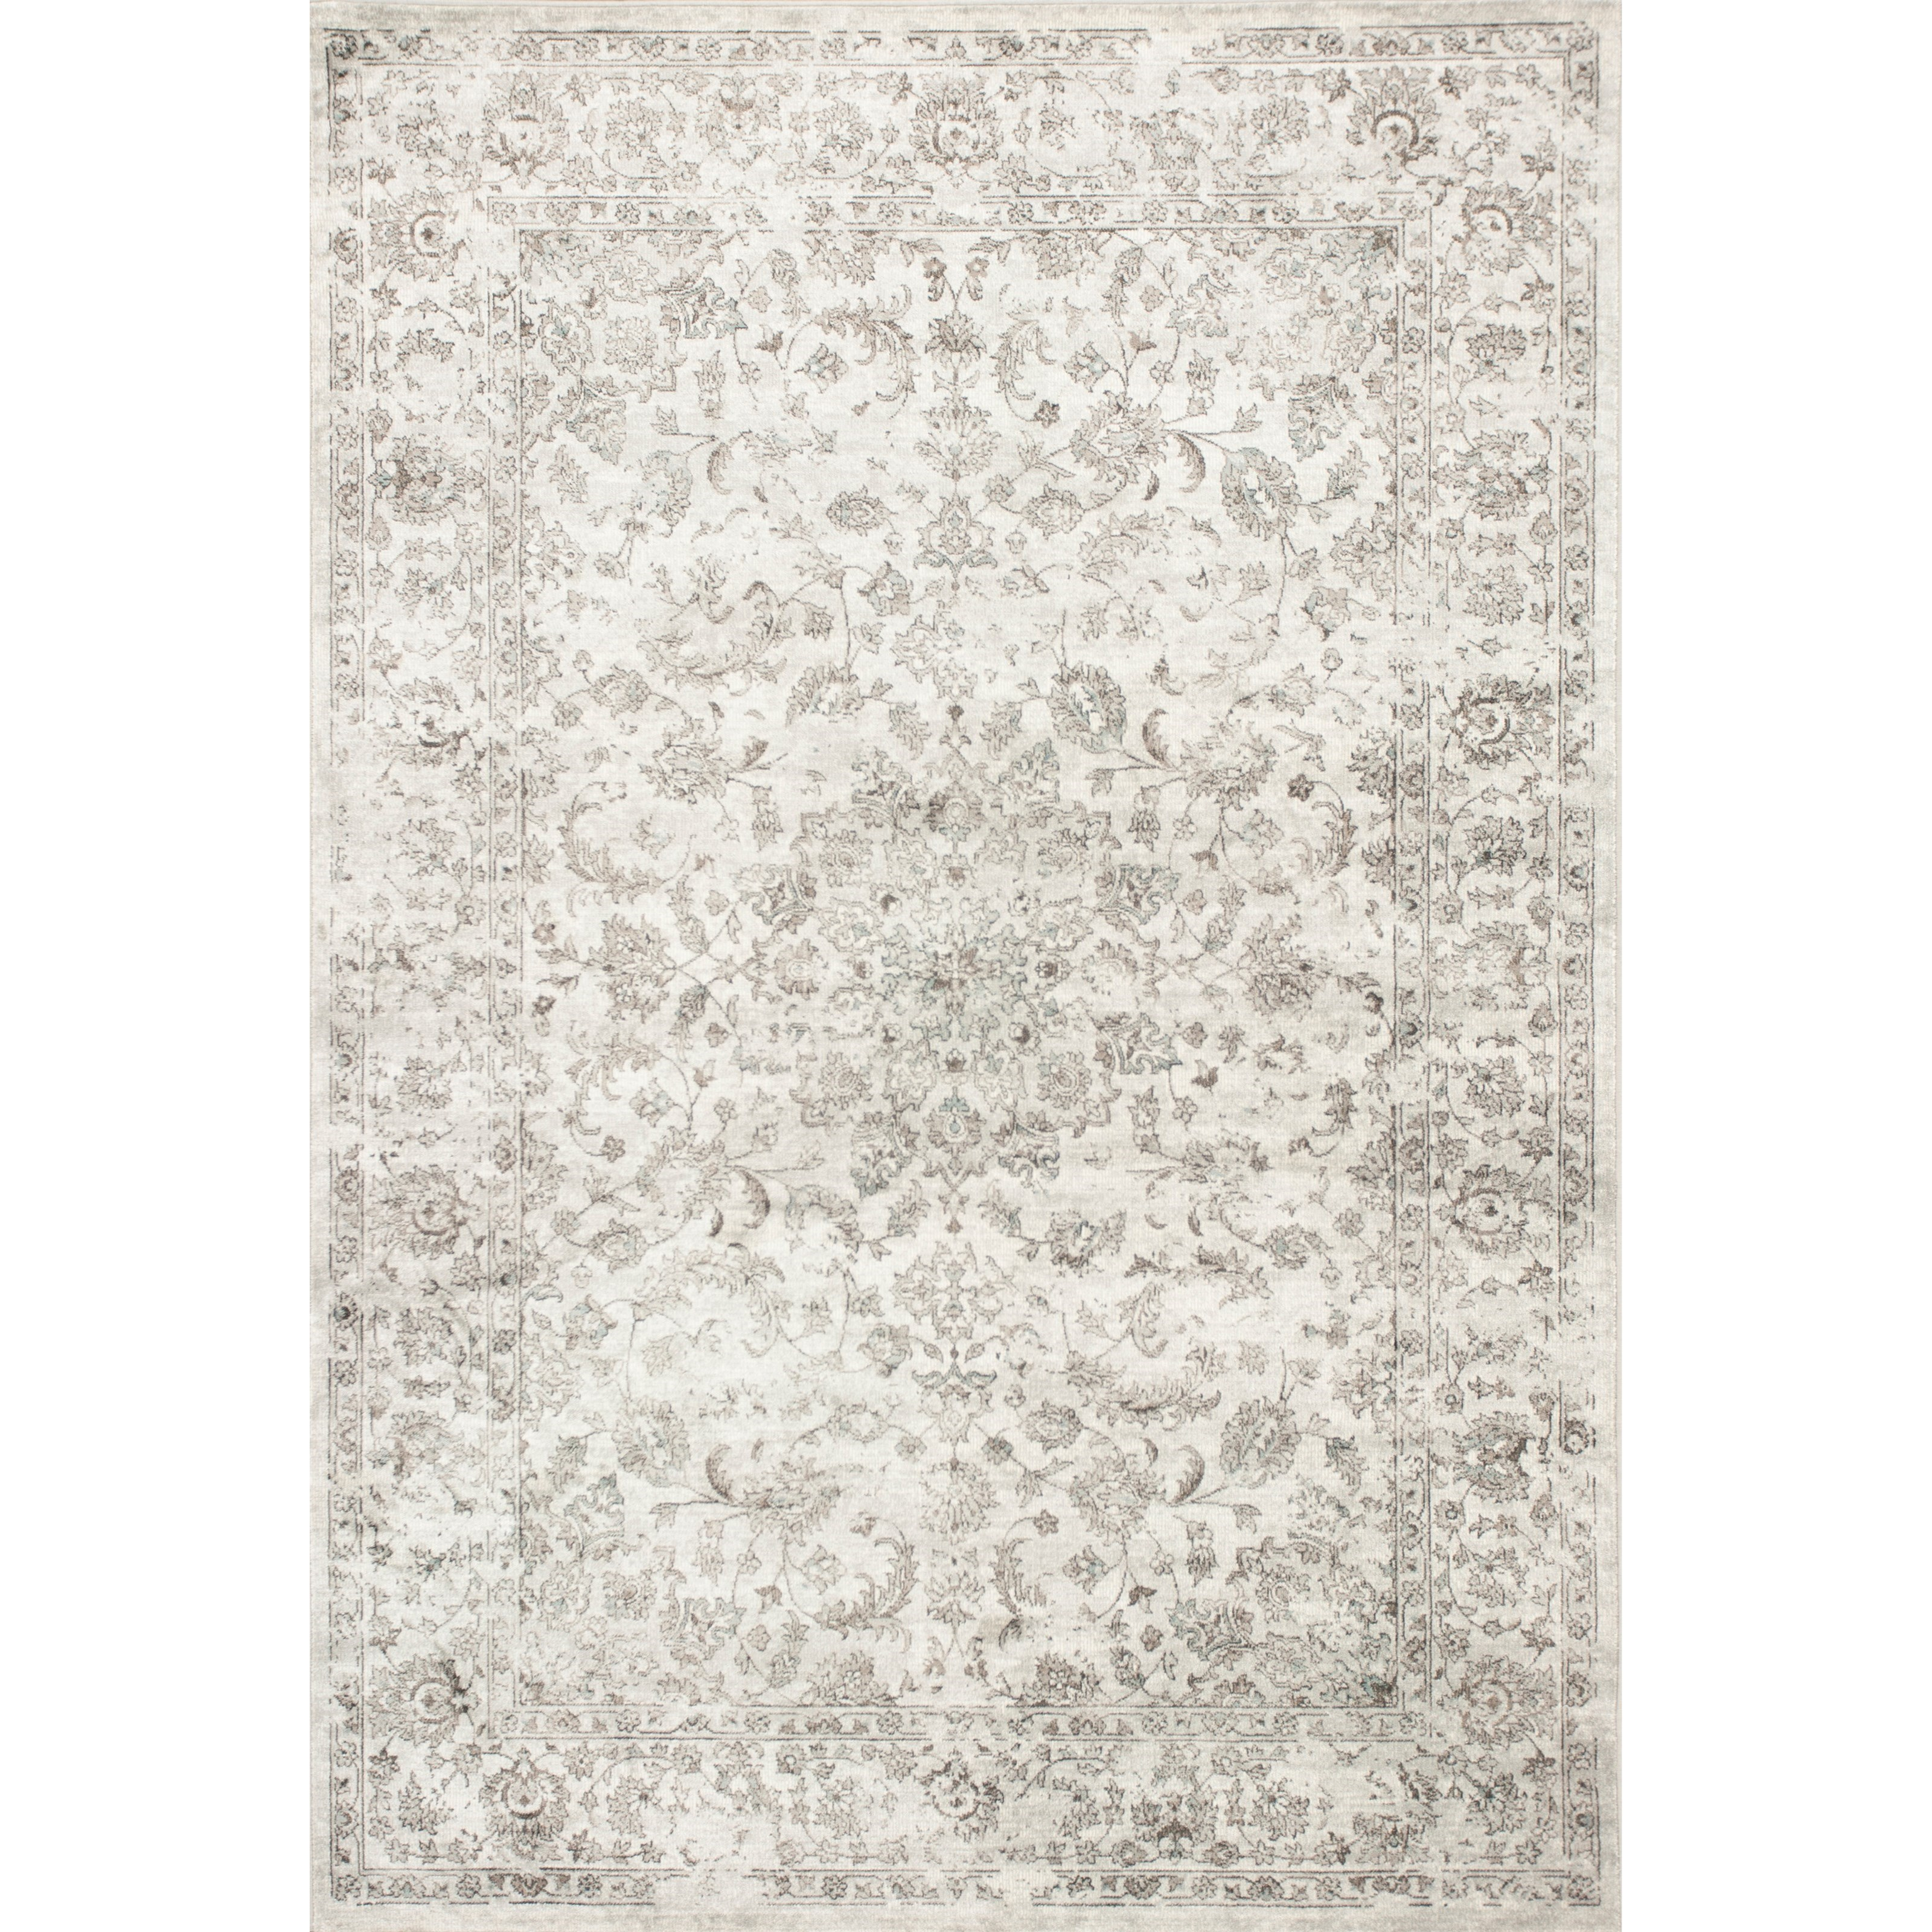 "Provence 5'3"" X 7'7"" Silver Medallia Area Rug by Kas at Zak's Home"